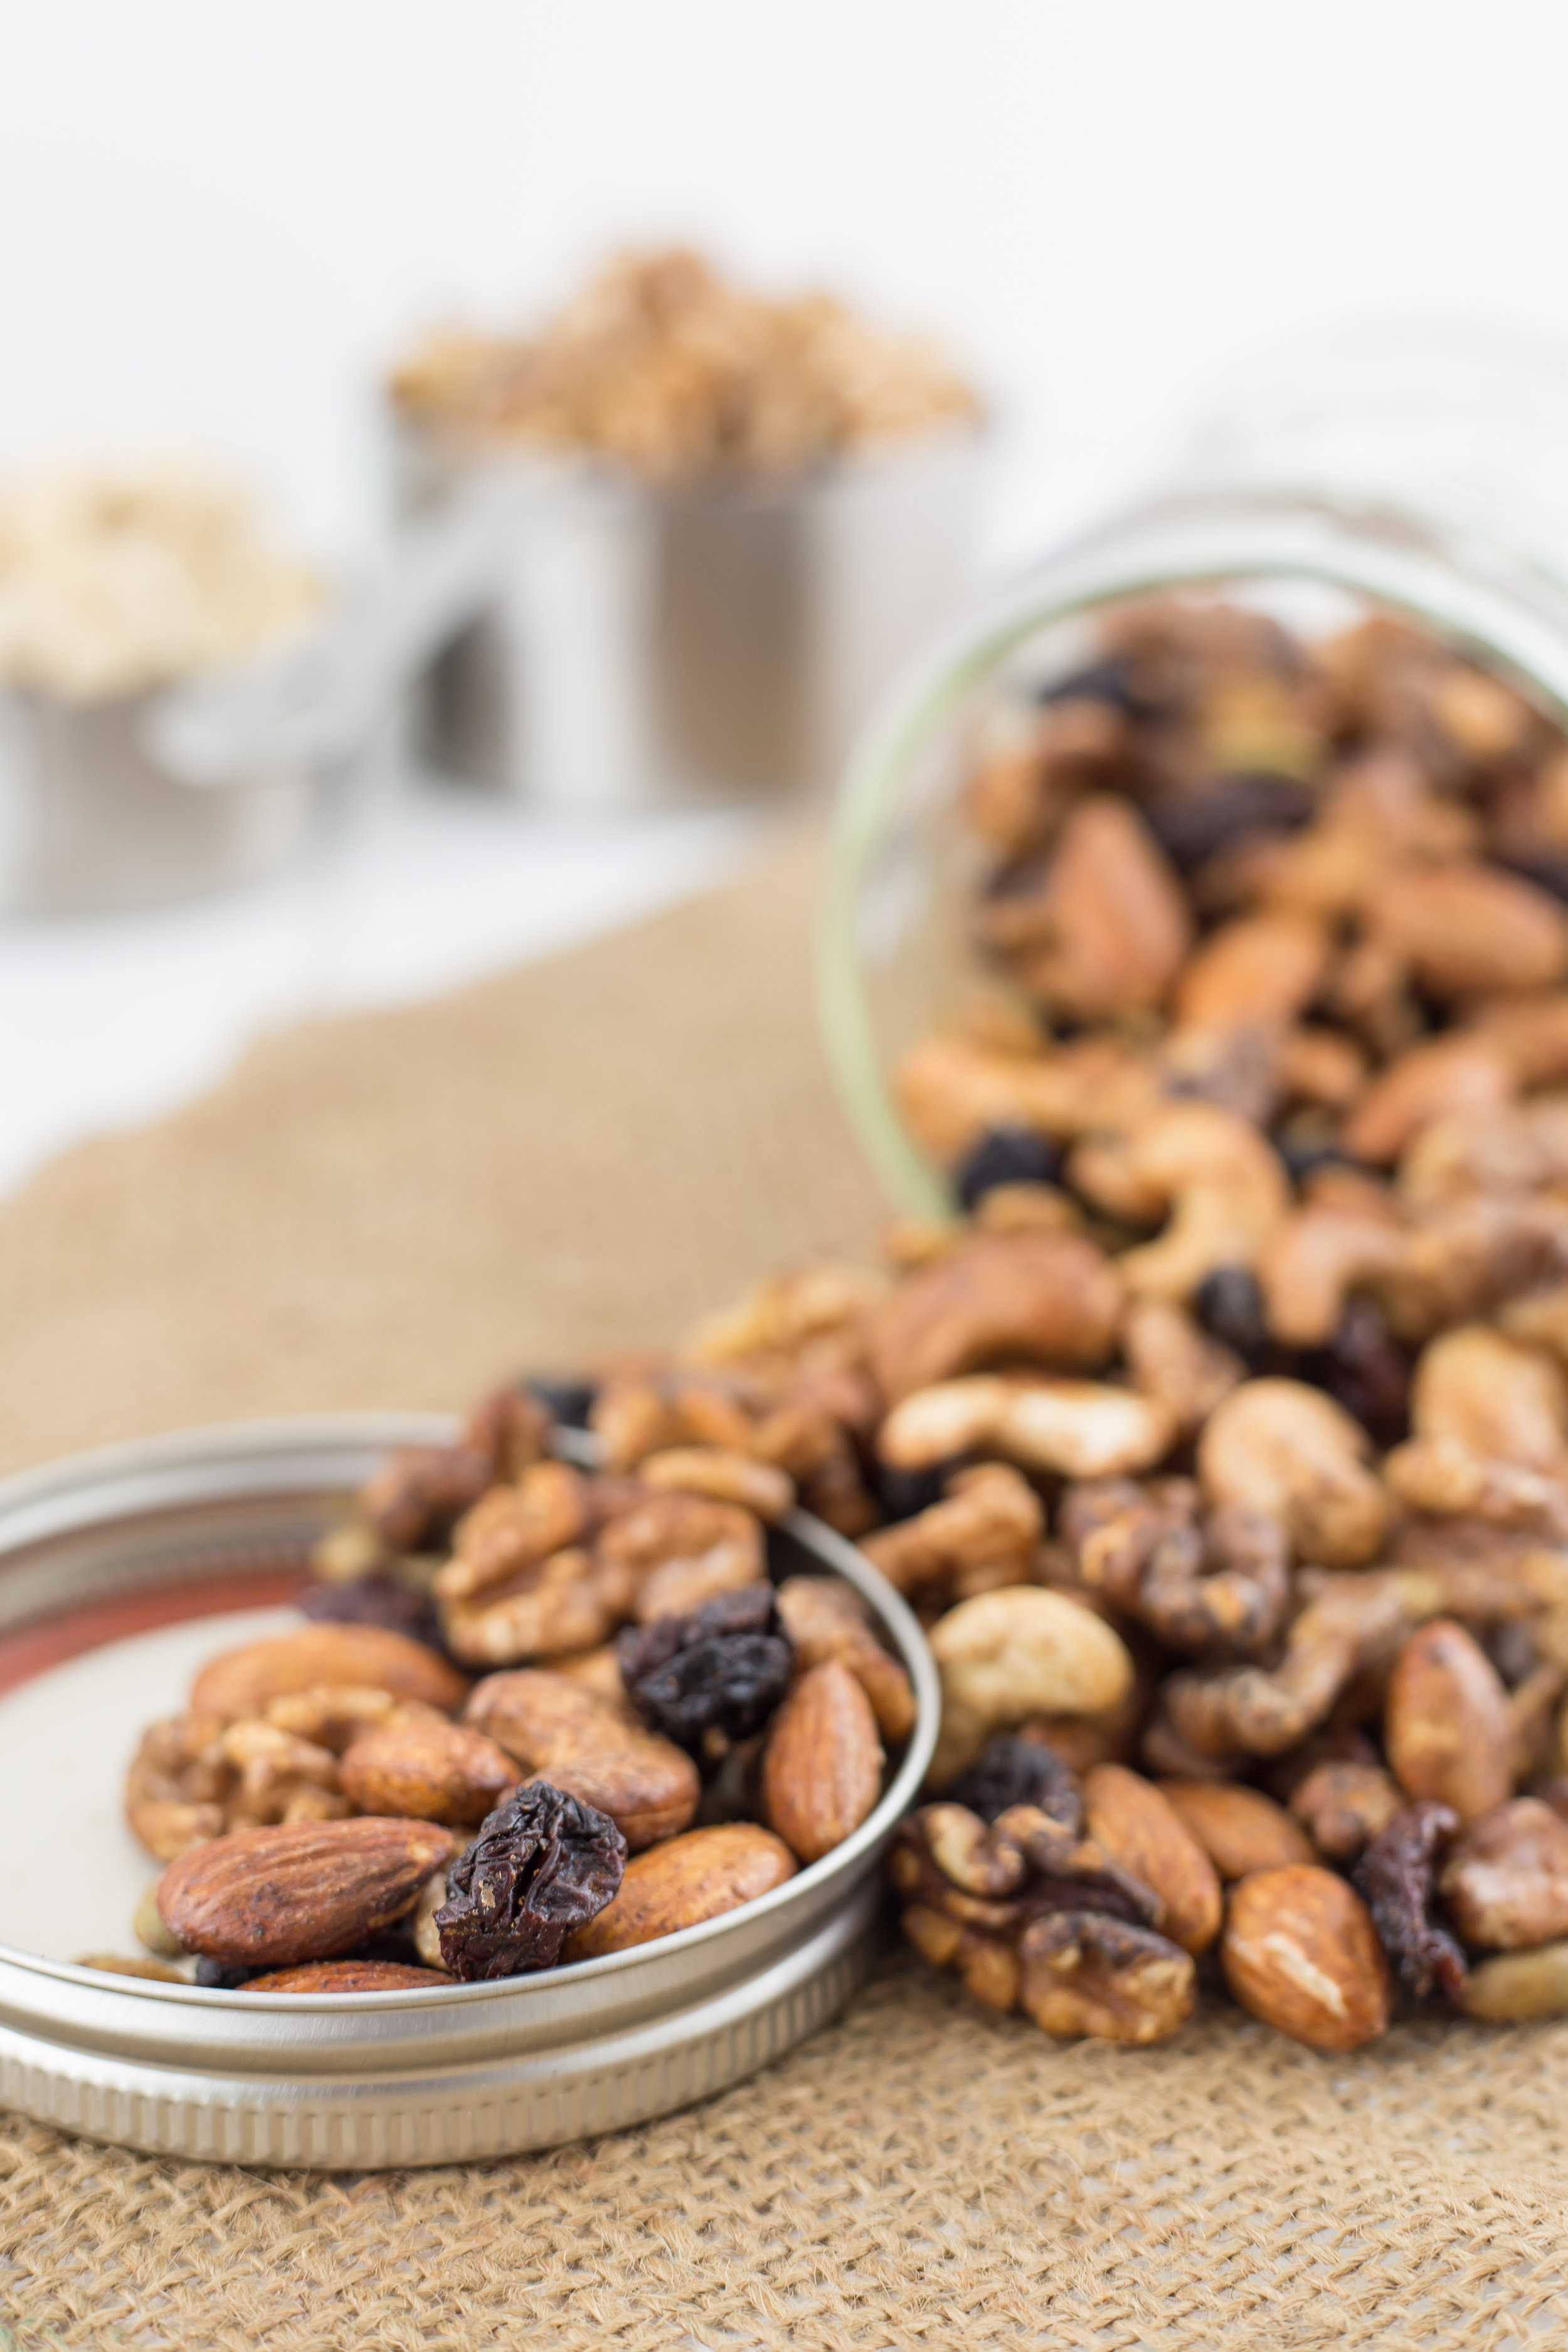 MN Nice Trail Mix, Trail Mix, Northern MN Hikes, Best  Hikes On The North Shore, Paleo, Recipes,